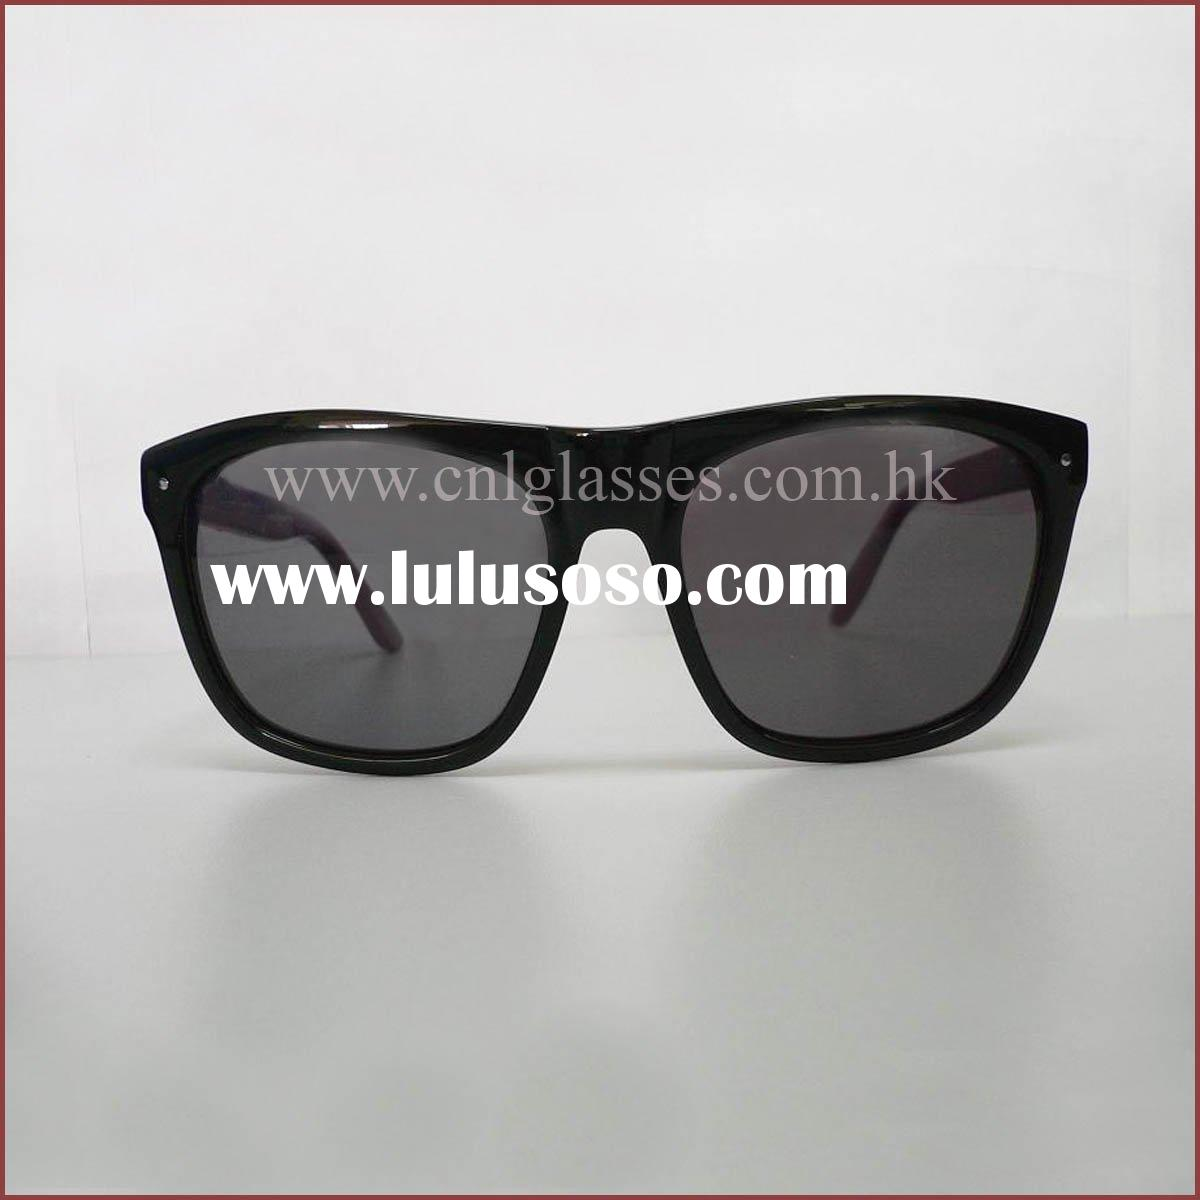 new leisure quality brand fashion sunglasses 2011